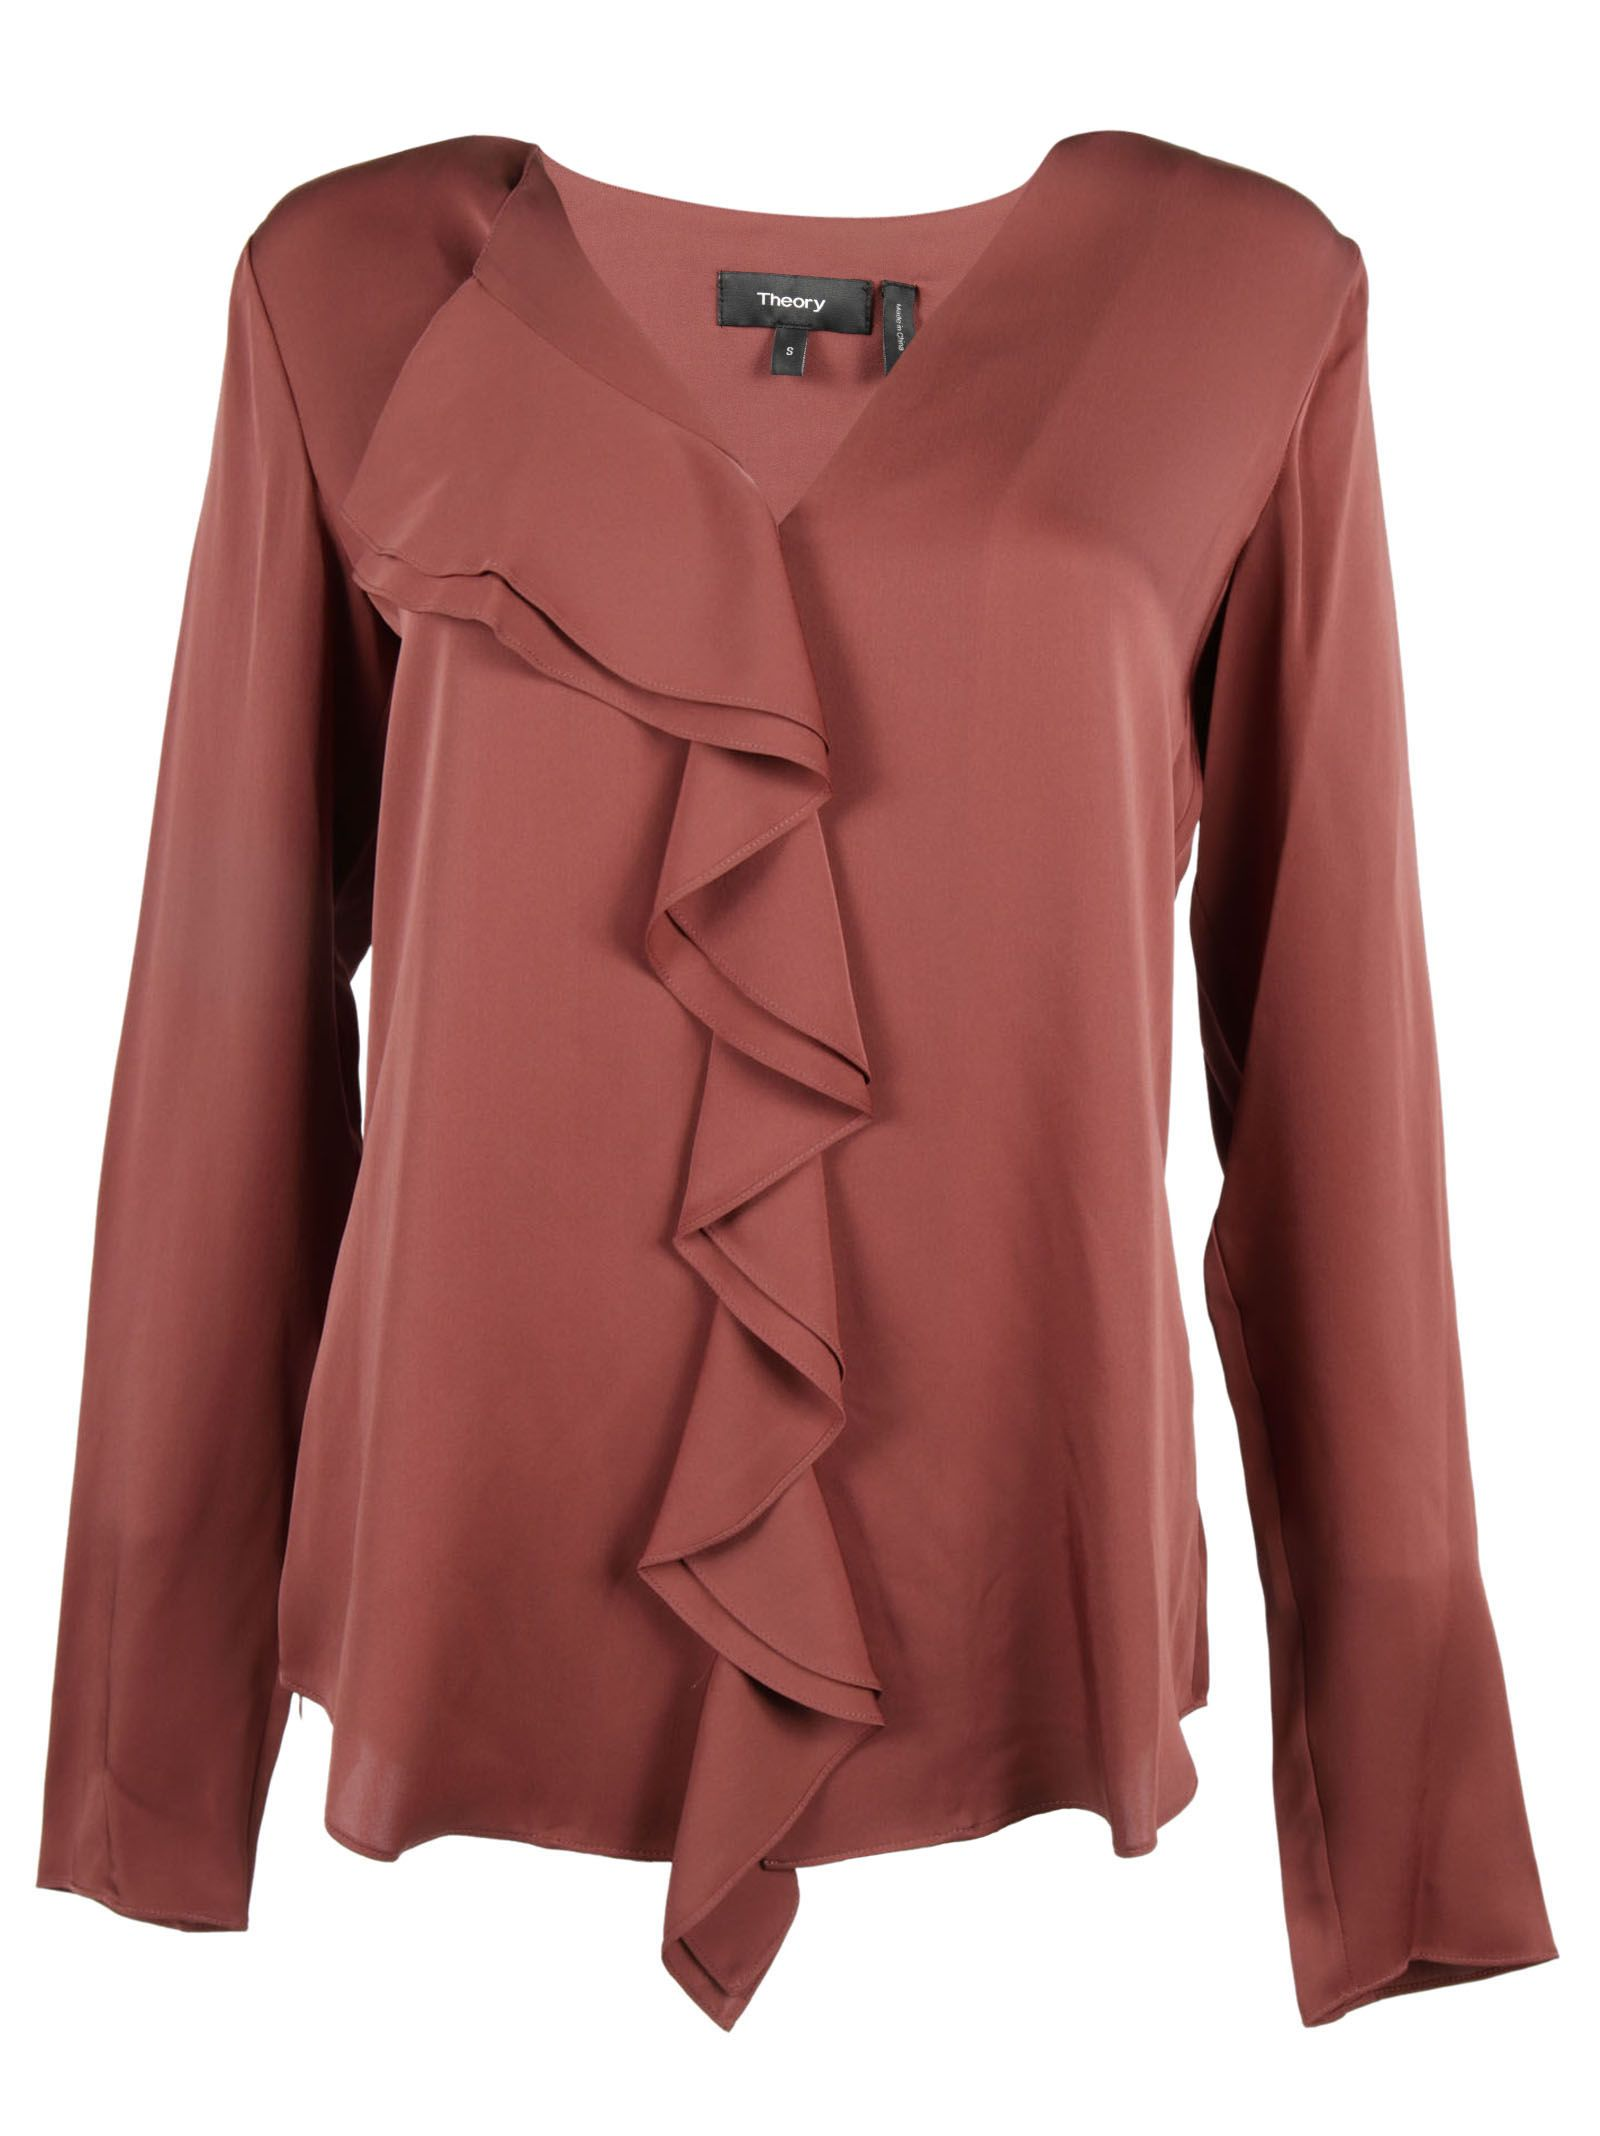 Theory Ruffle Front Blouse